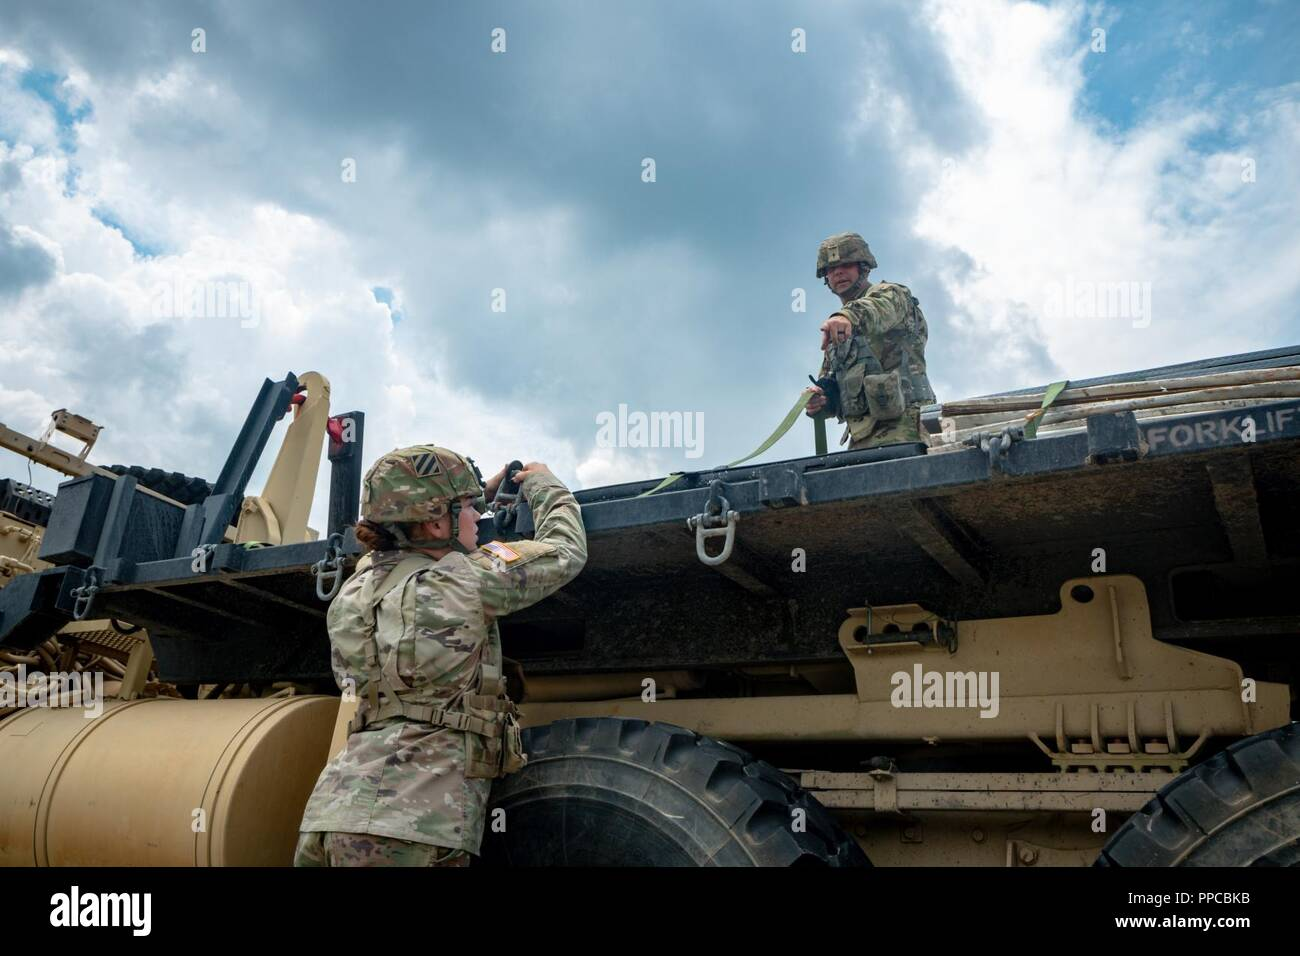 "Sgt. Wayne Coats and Pfc. Amanda Blanton of Delta Forward Support Company, 6th Squadron, 8th Cavalry Regiment, 2nd Armored Brigade Combat Team, properly secure resupply equipment to a M1077 A1 Flatrack, August 13, at Fort Stewart, Ga. ""How will our Soldiers fight without ammunition, food, or water?"" said Sgt. Coats. ""A team is like a clock. There are continuous gears inside of that clock, and we are one of those gears in motion."" - Stock Image"